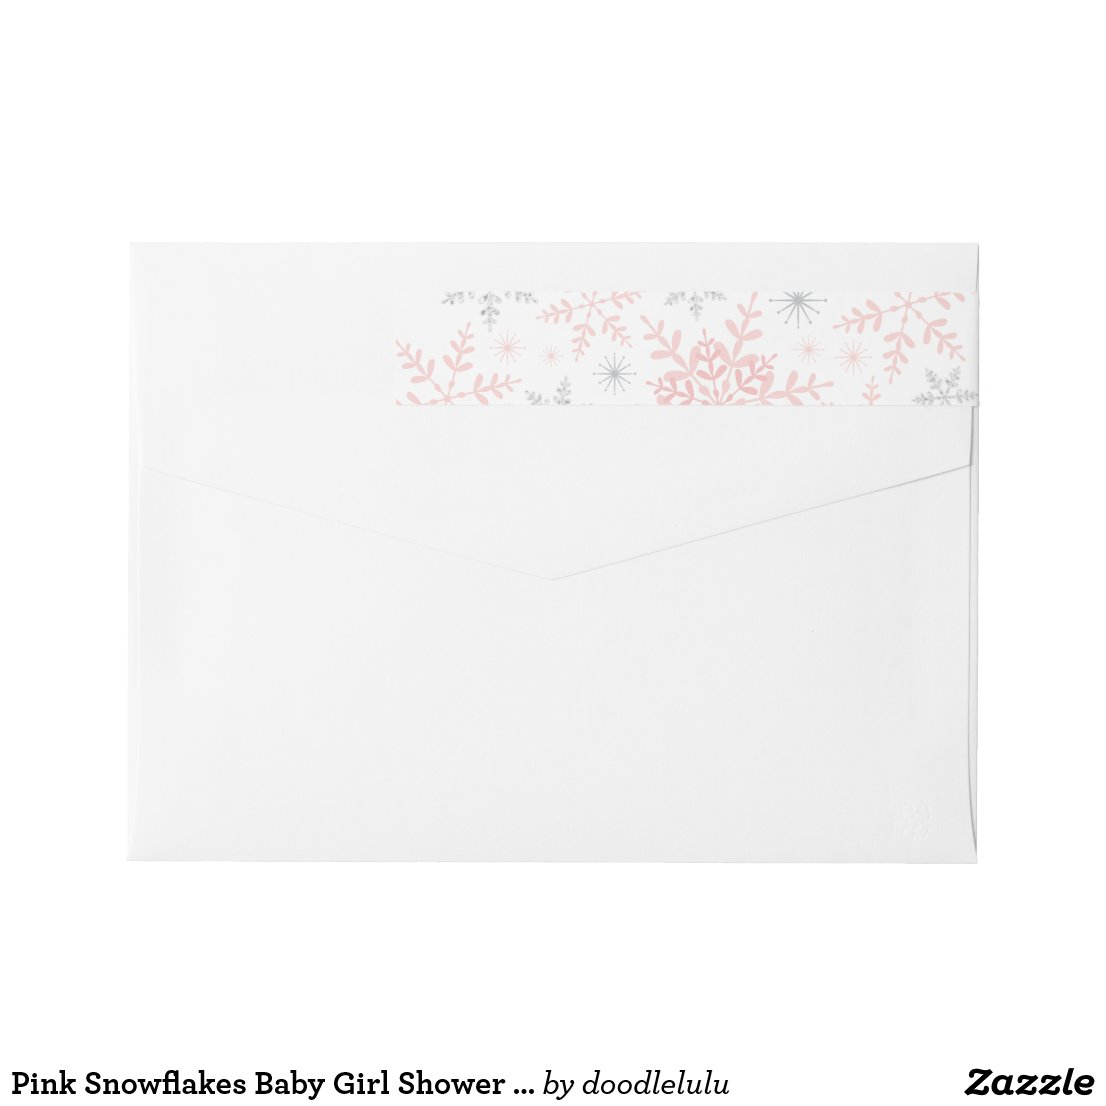 Pink Snowflakes Baby Girl Shower Silver Glitter Wrap Around Label